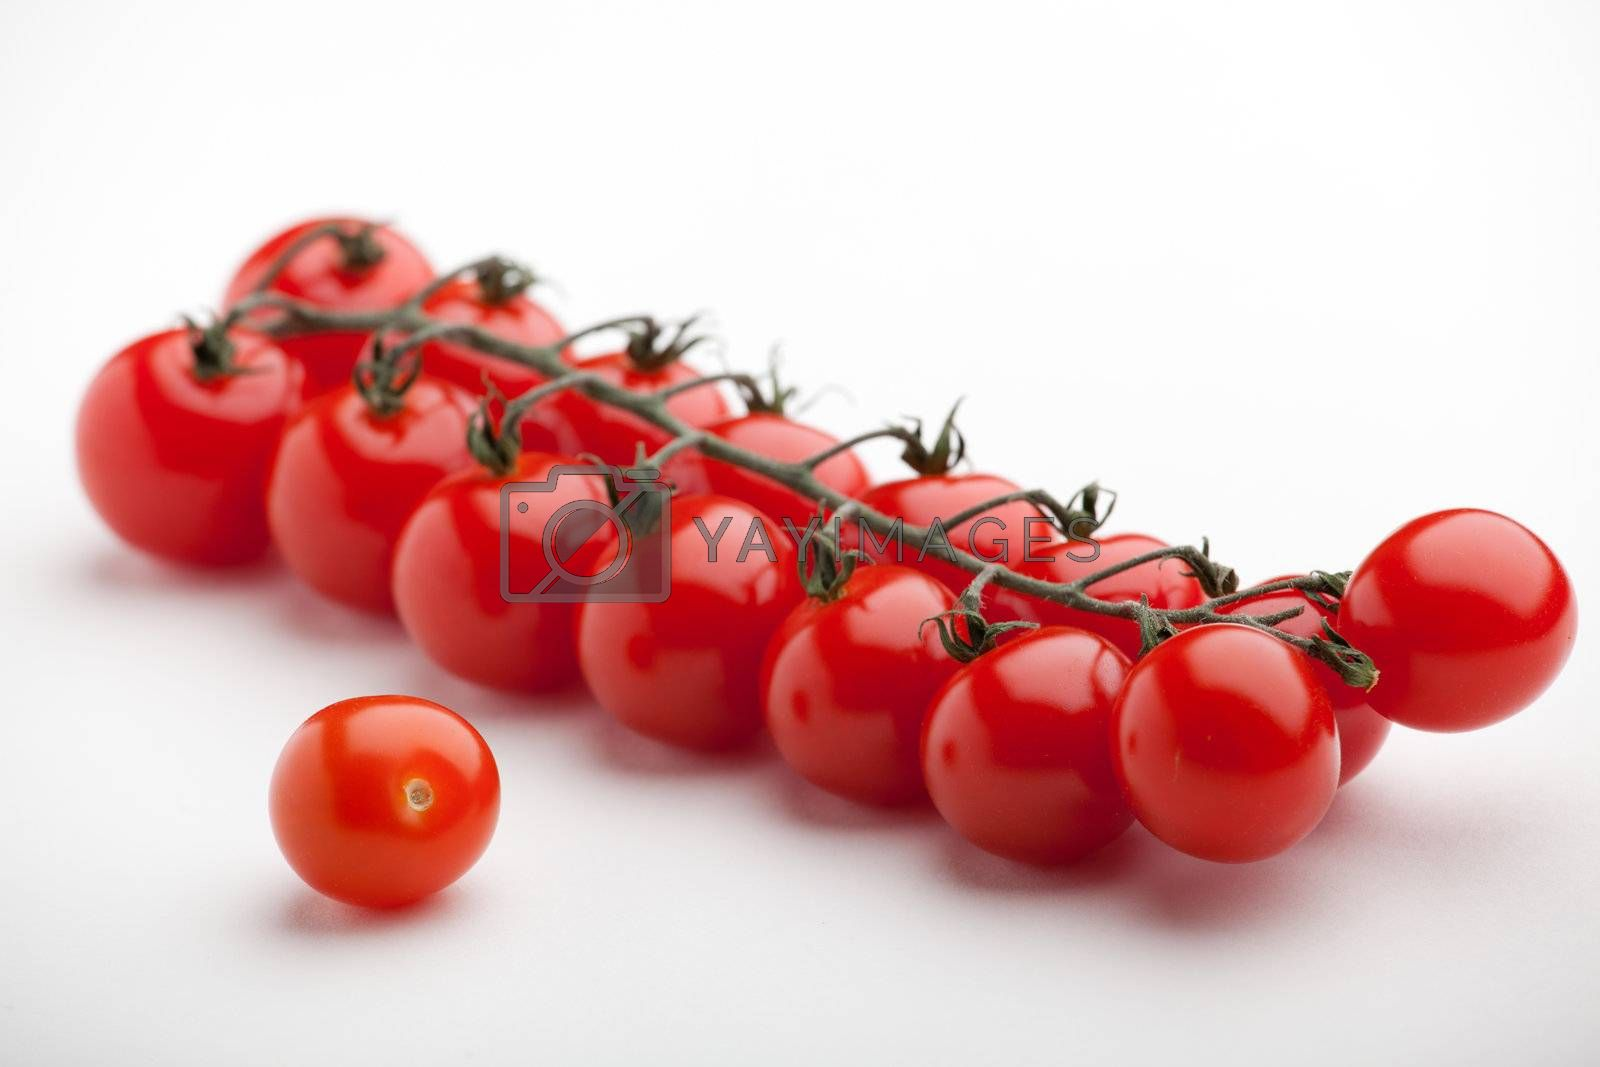 Royalty free image of Bunch of ripe red cherry tomatoes close-up on white background by SergeyAK